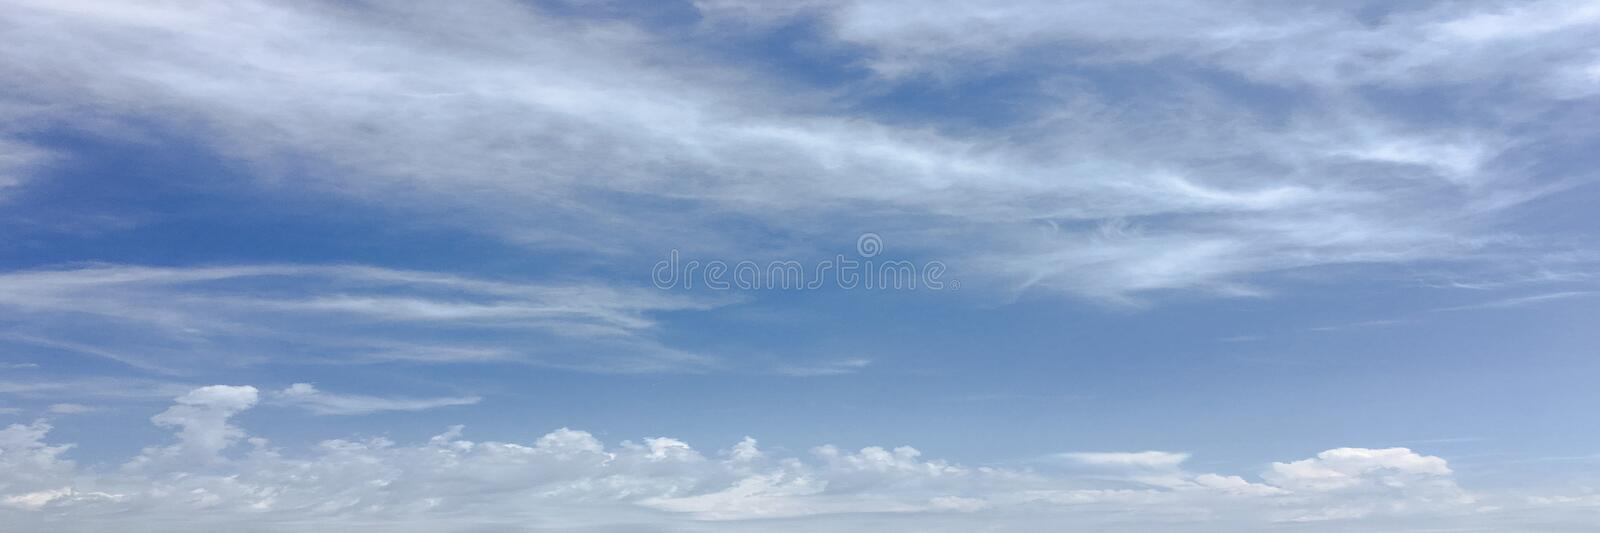 Beautiful clouds against a blue sky background. Cloudscape sky. Blue sky with cloudy weather, nature cloud. White clouds, blue sky. And sun royalty free stock photo